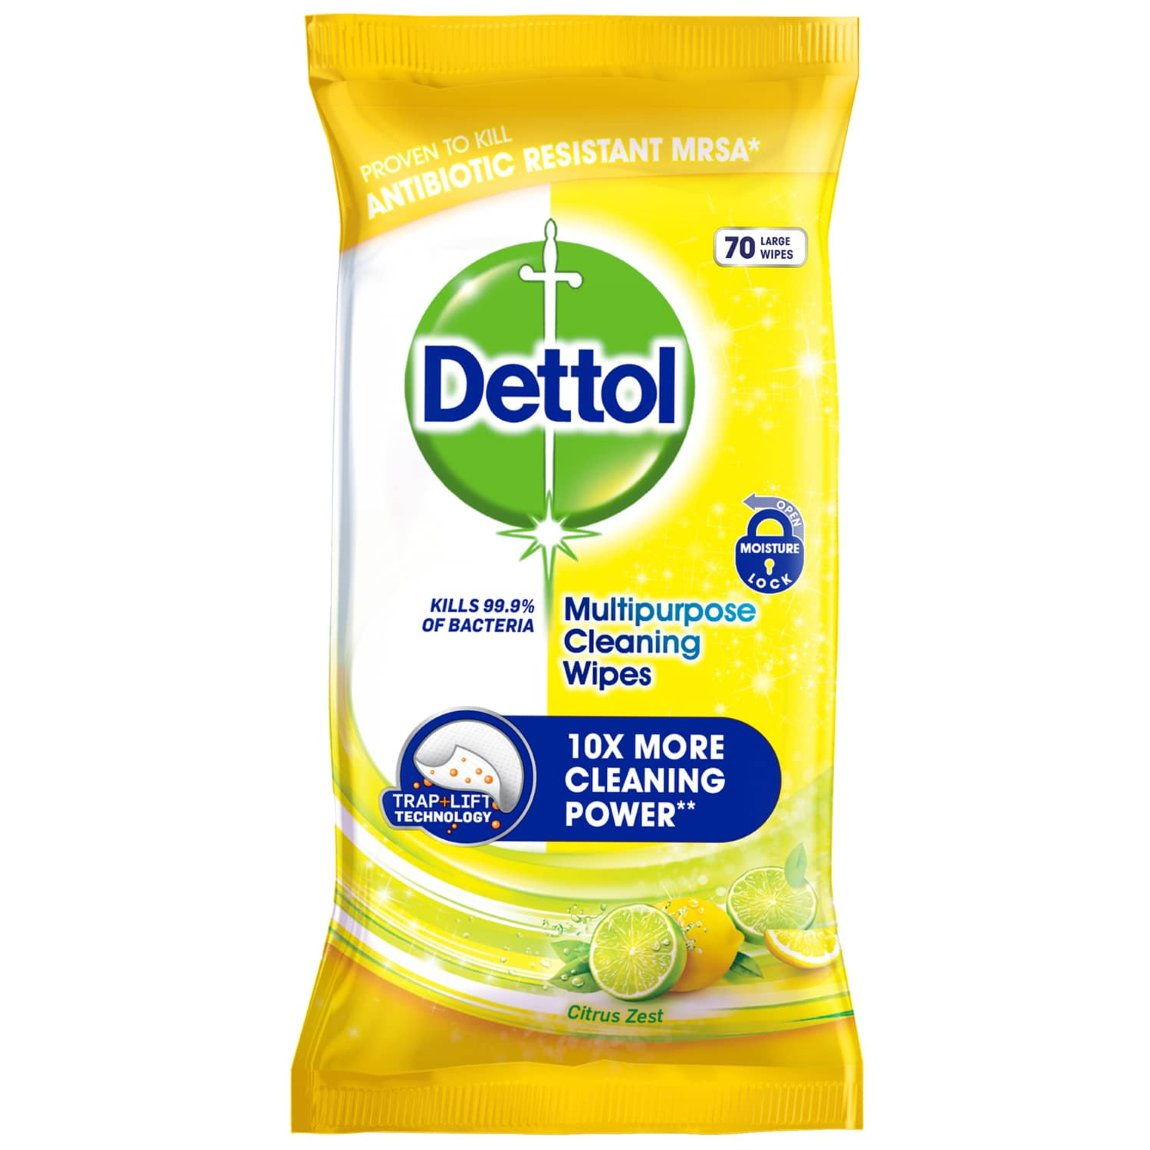 Dettol Multipurpose Cleaning Wipes 70pk - Citrus Zest